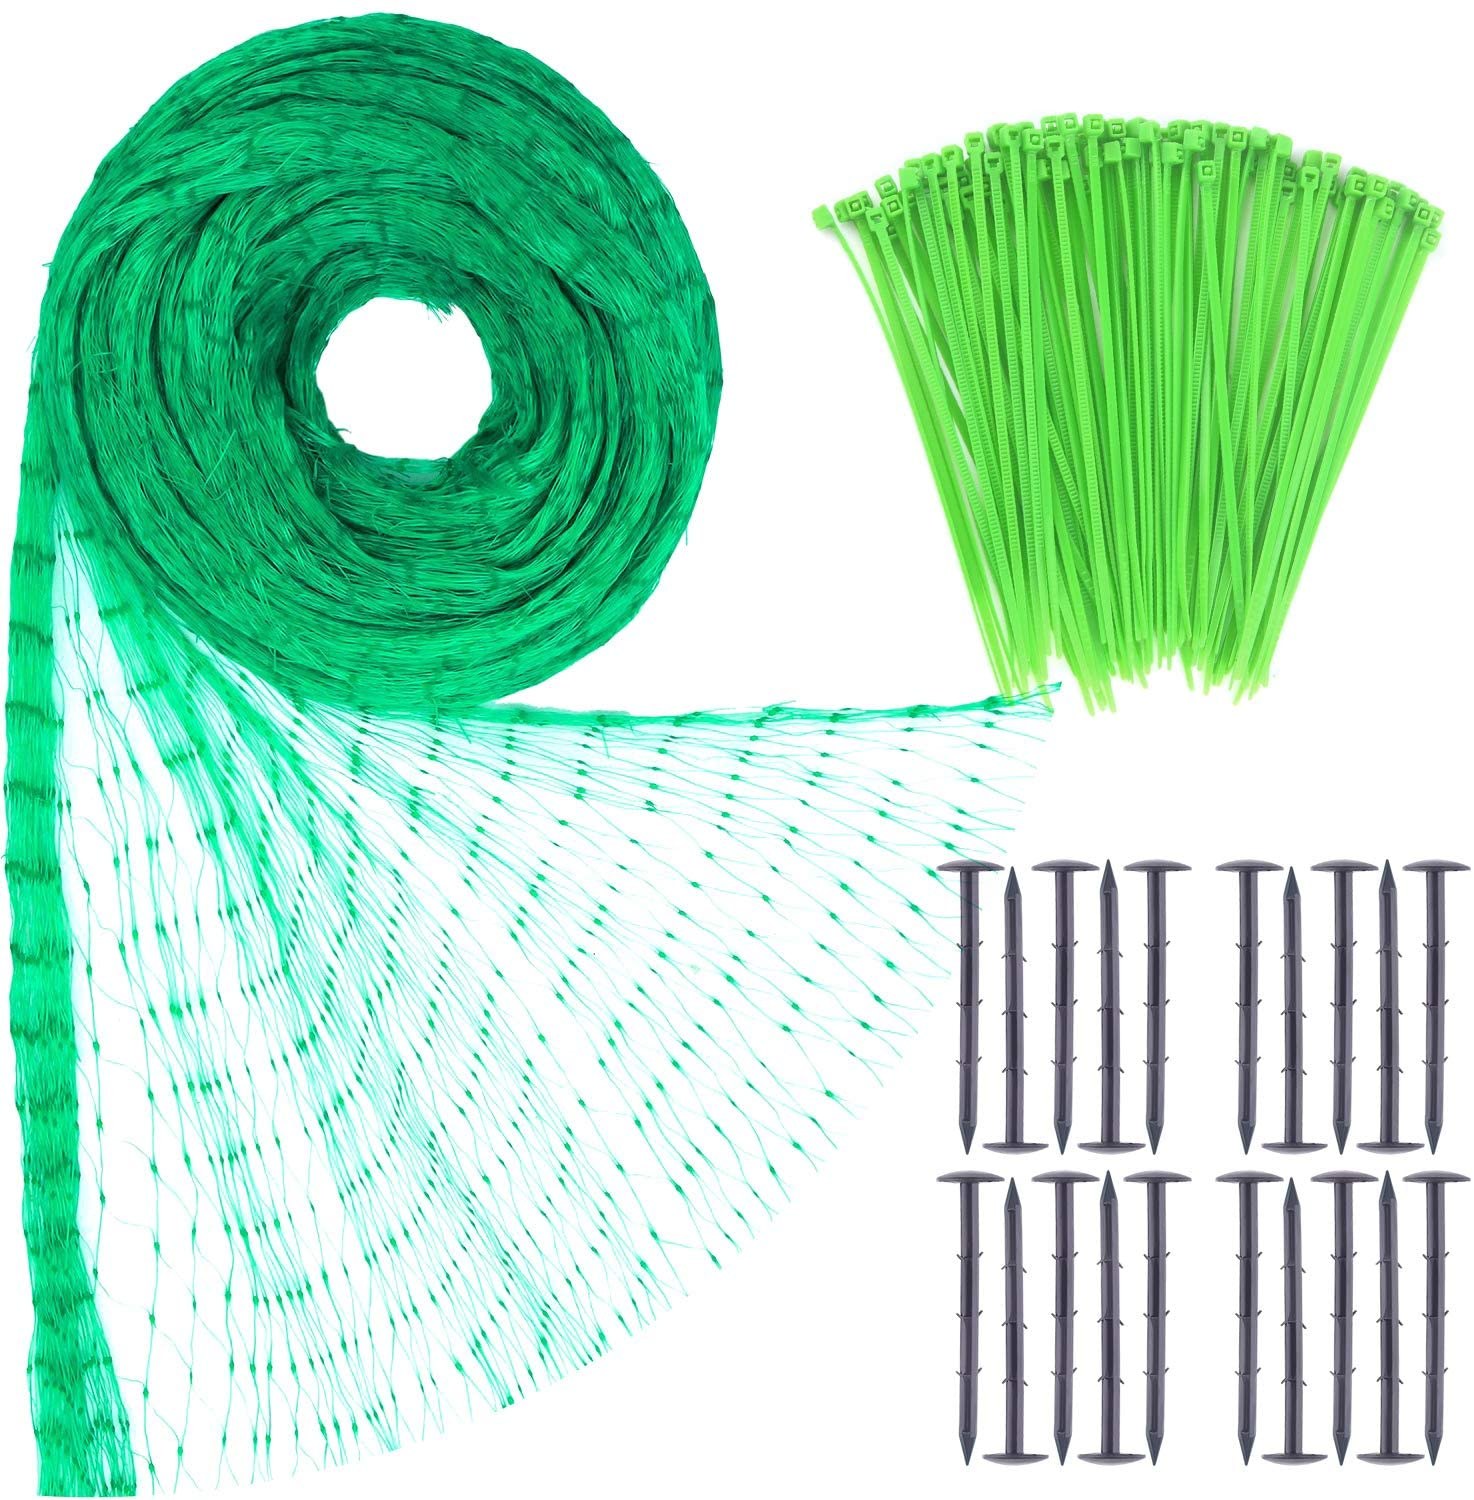 TUPARKA 2m x 10m Green Anti-Bird Netting Protect Against Rodents Birds with 100Pcs Nylon Cable Ties and 20 Pcs Garden Securing Pegs